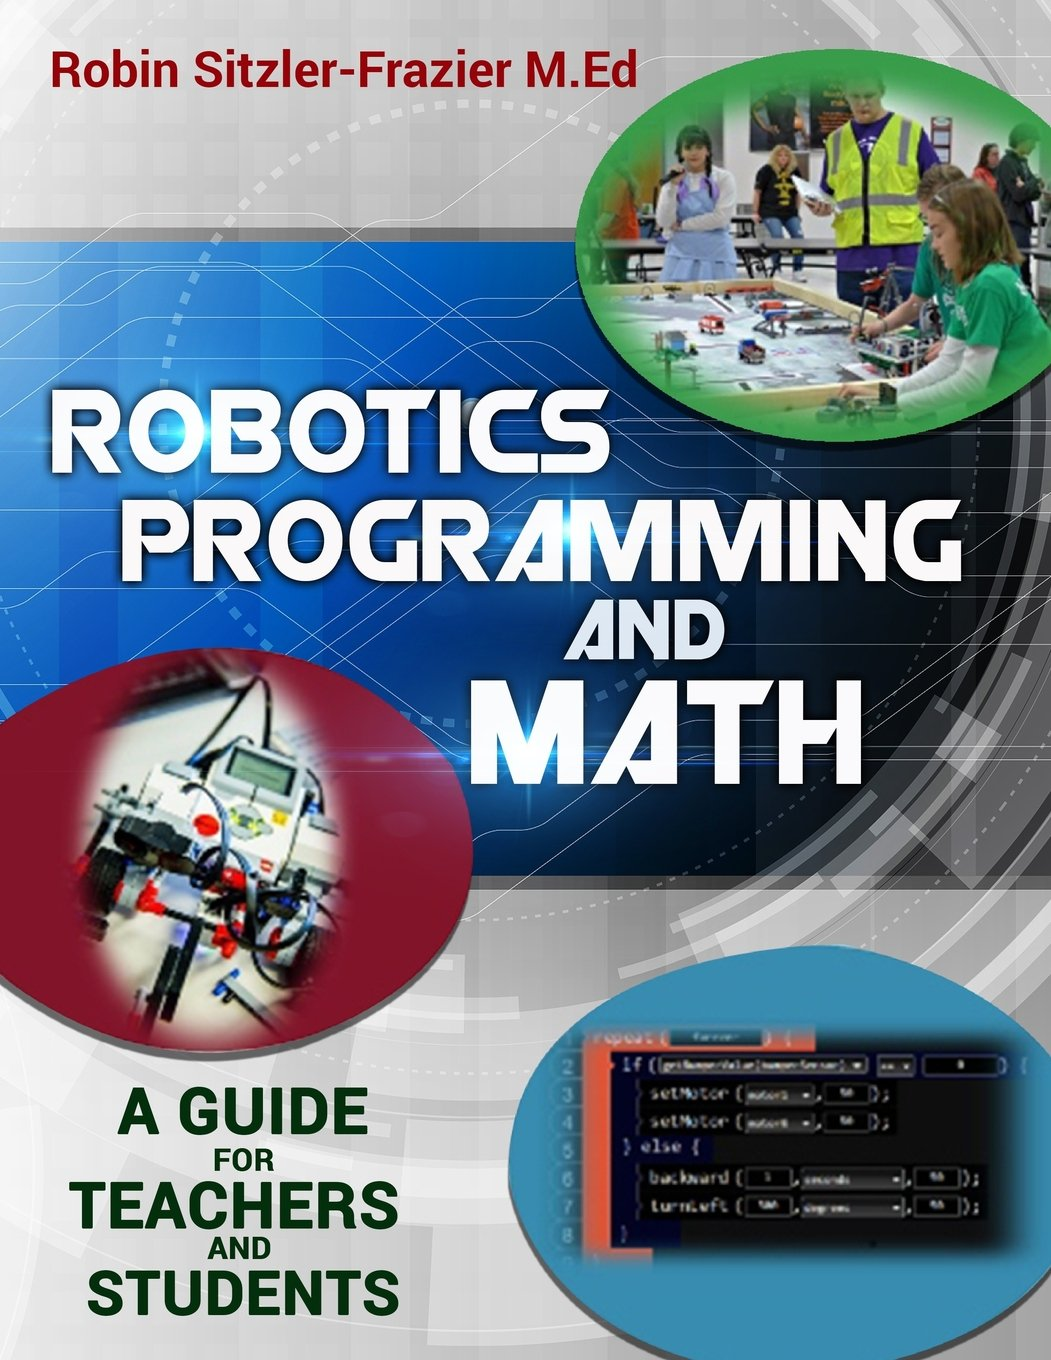 Robotics Programming and Math: Introductory Guide for